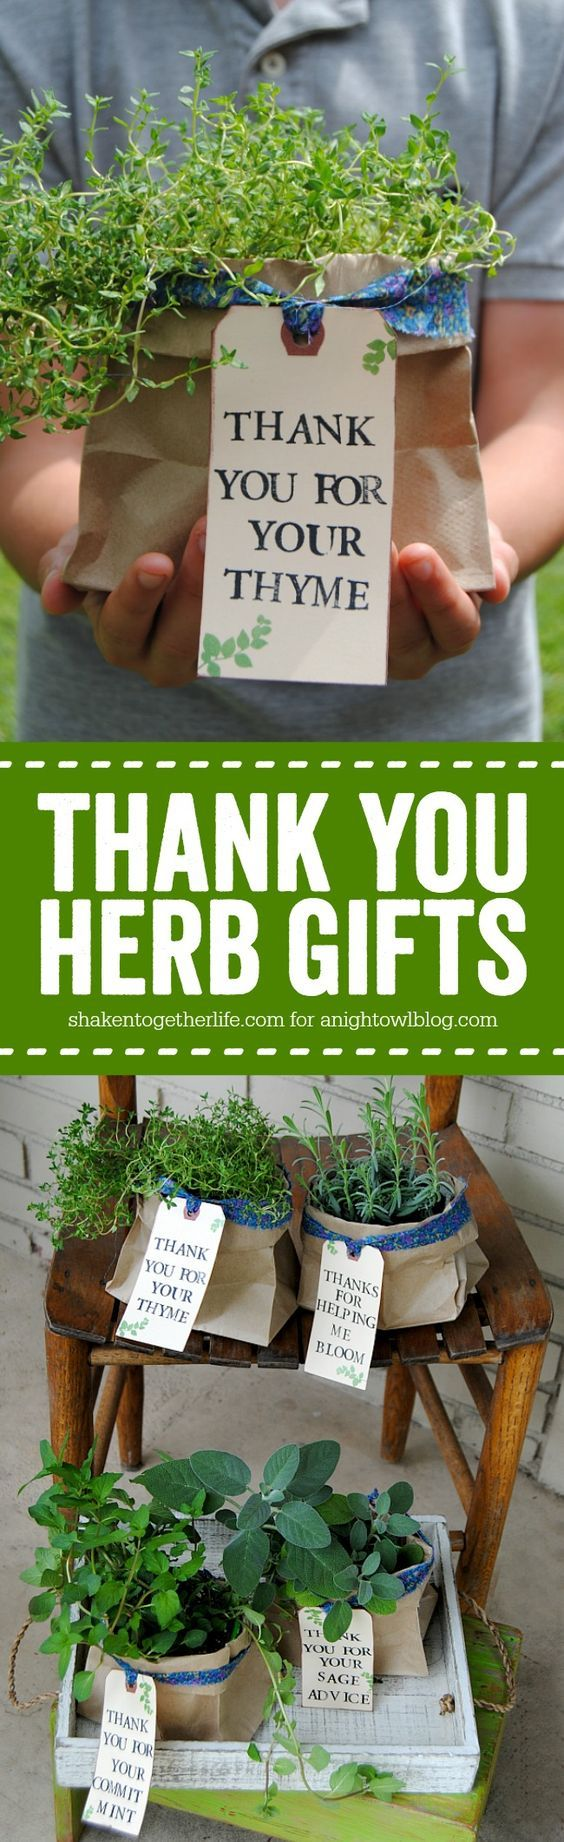 Thank You Herb Gifts | Potted herbs, Tie dress and Dress up